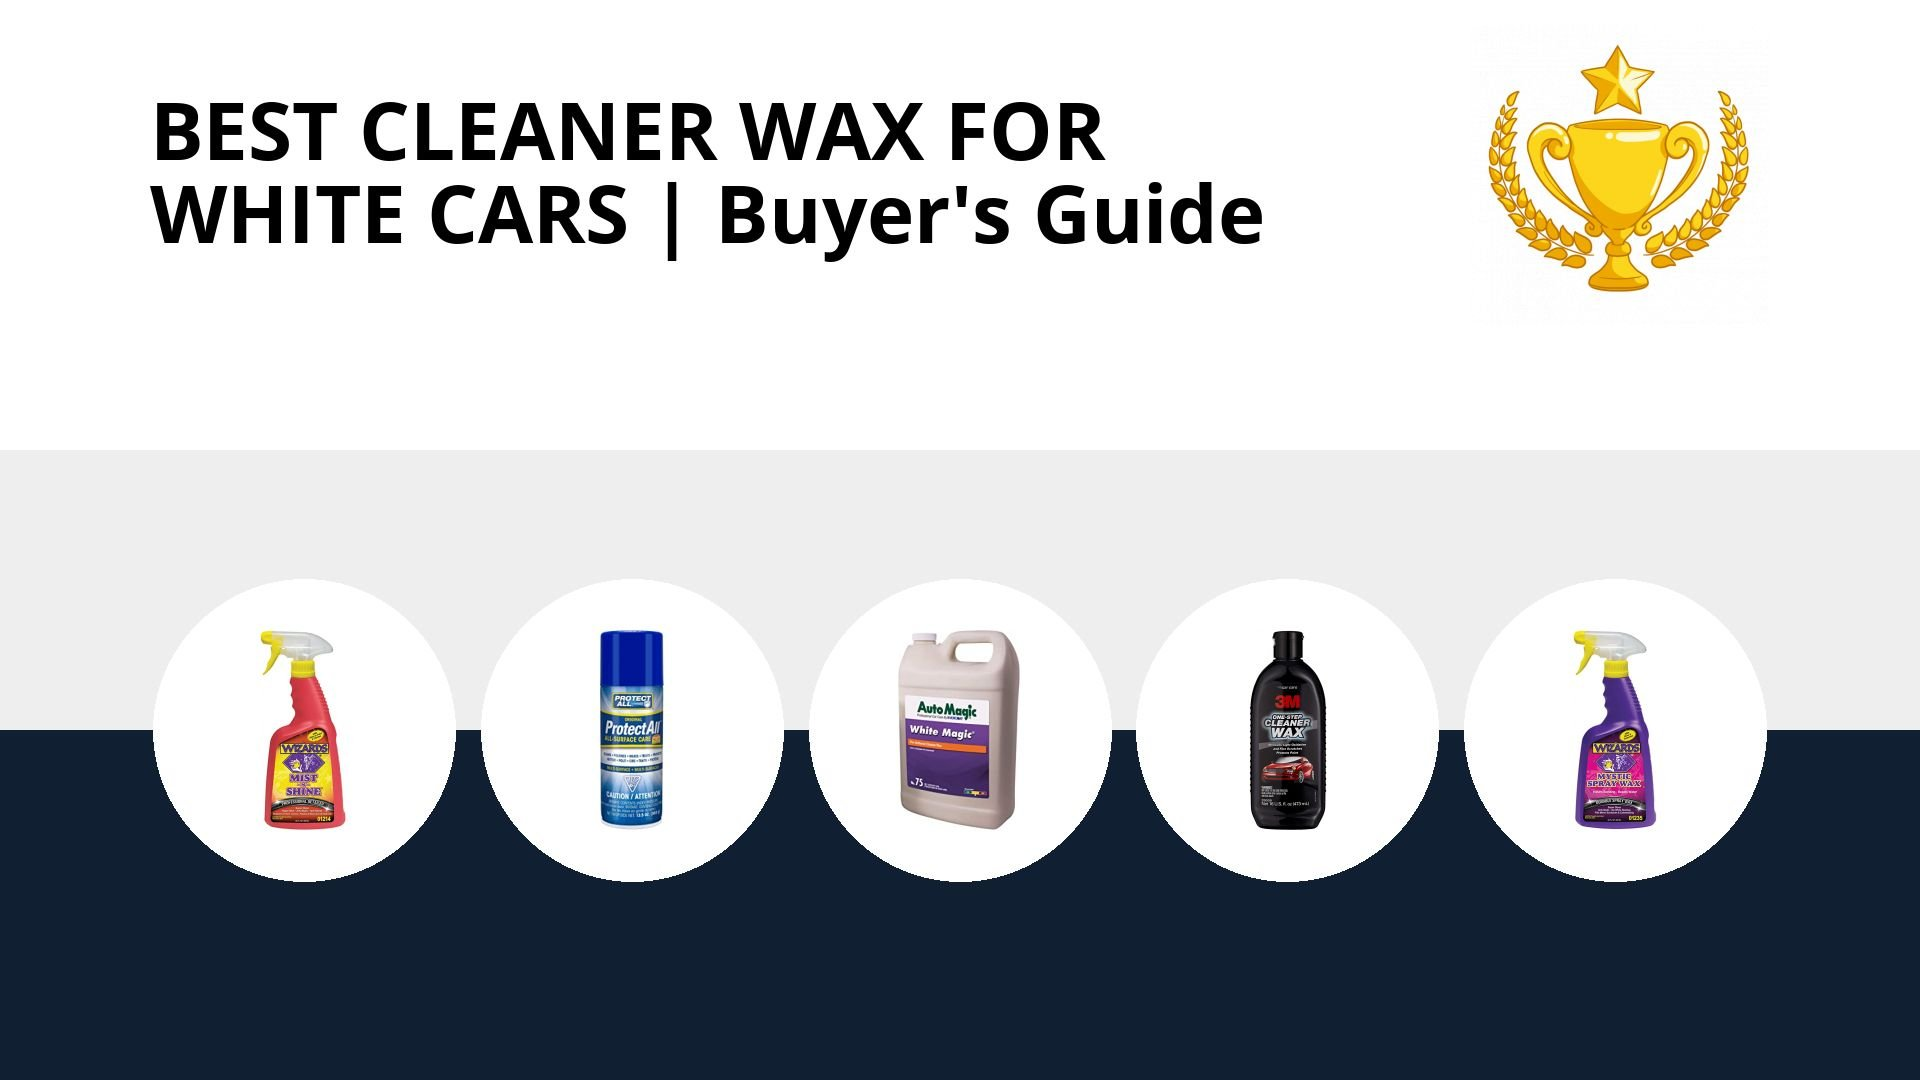 Best Cleaner Wax For White Cars: image